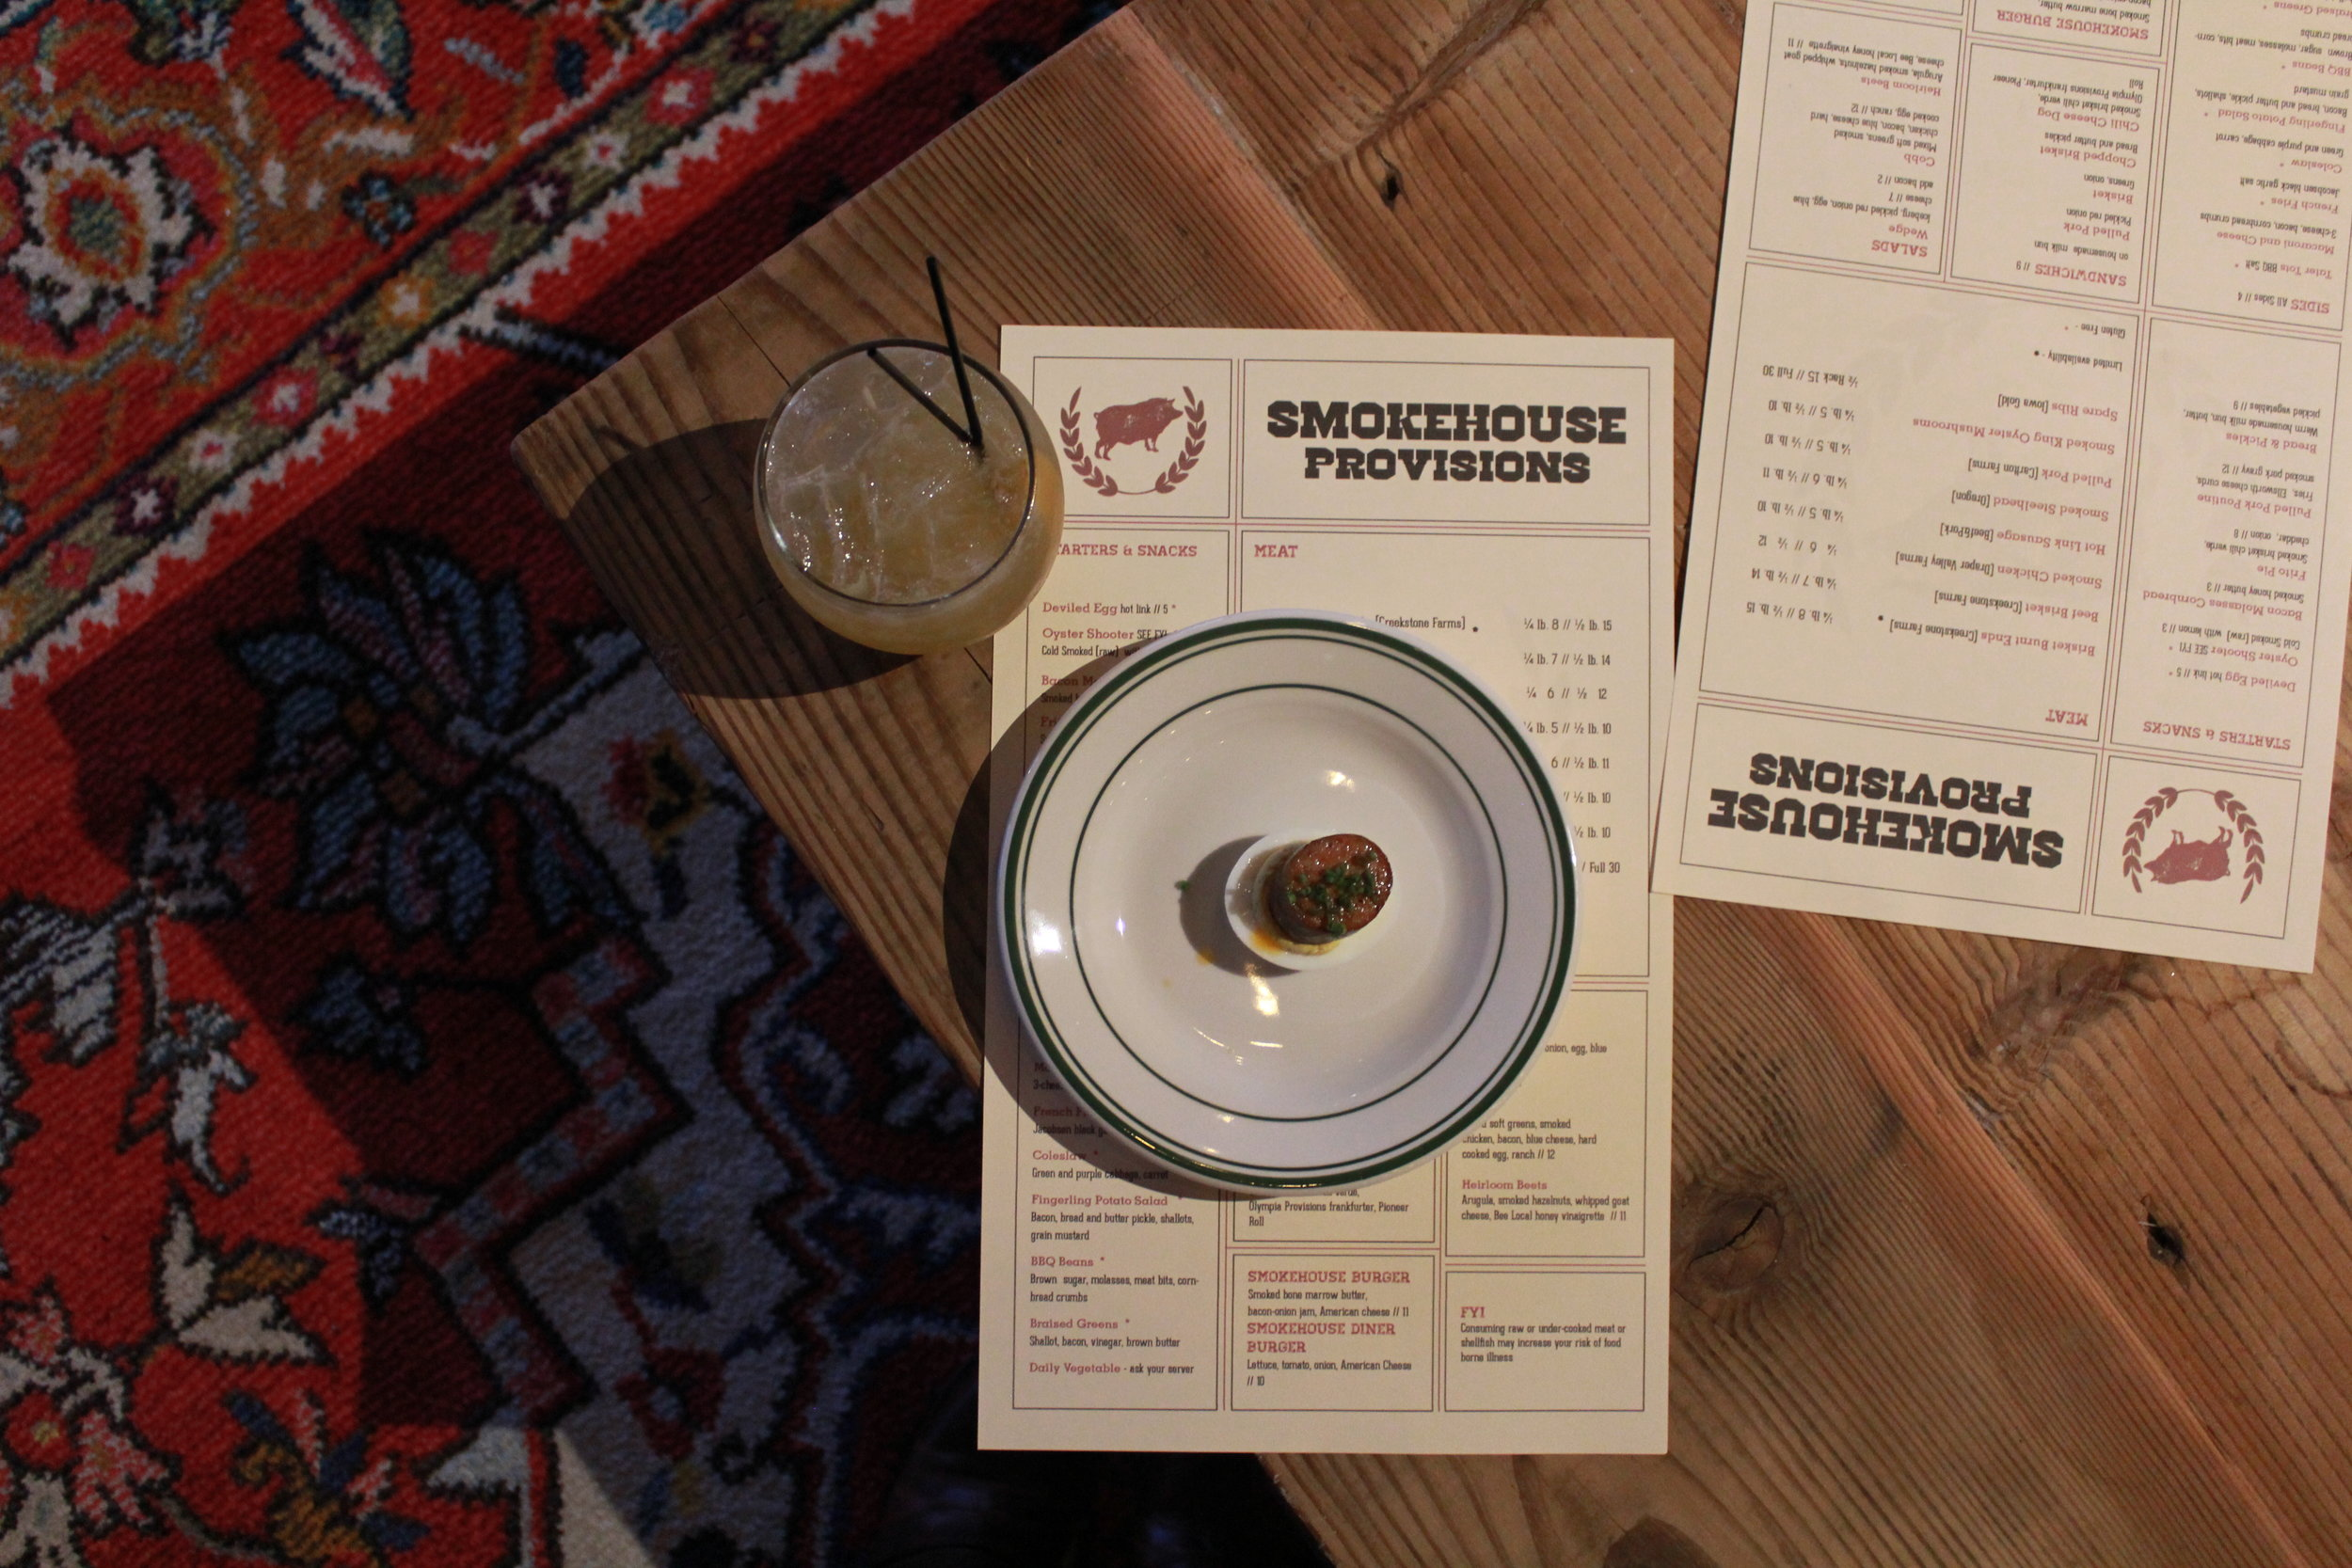 SMOKEHOUSE PROVISIONS IN VANCOUVER, WA